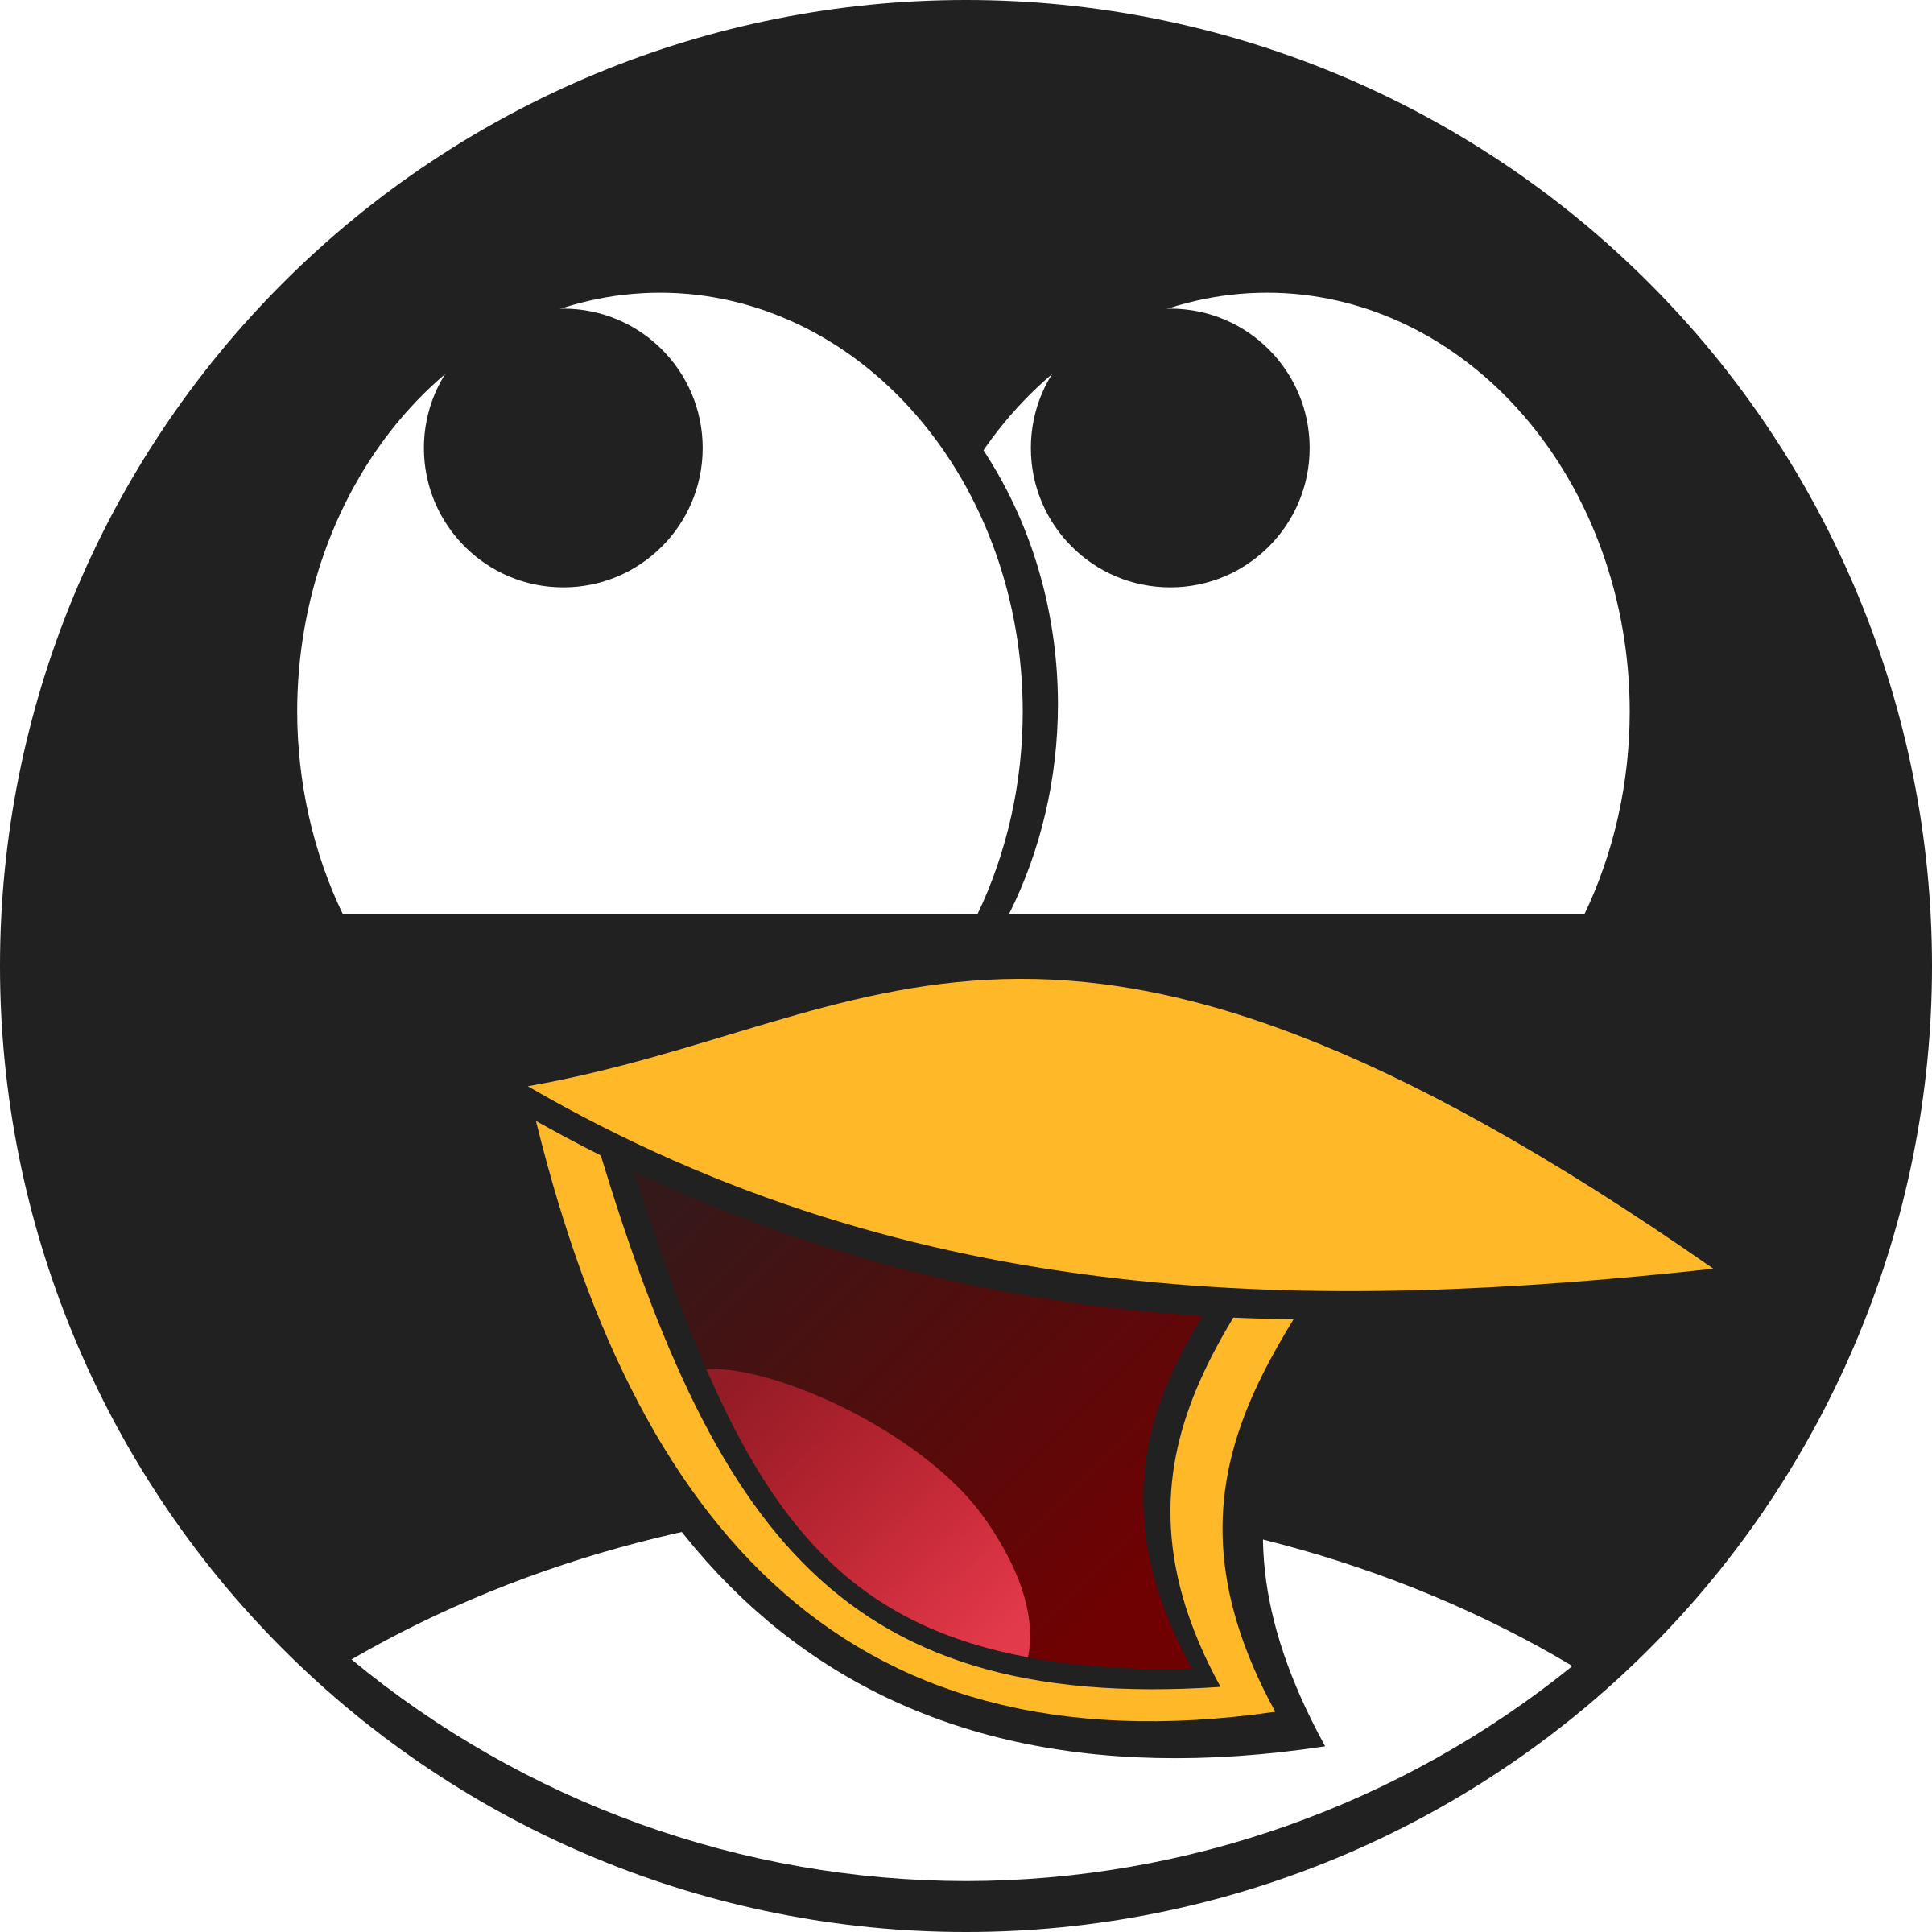 Awesome Linux by qubodup